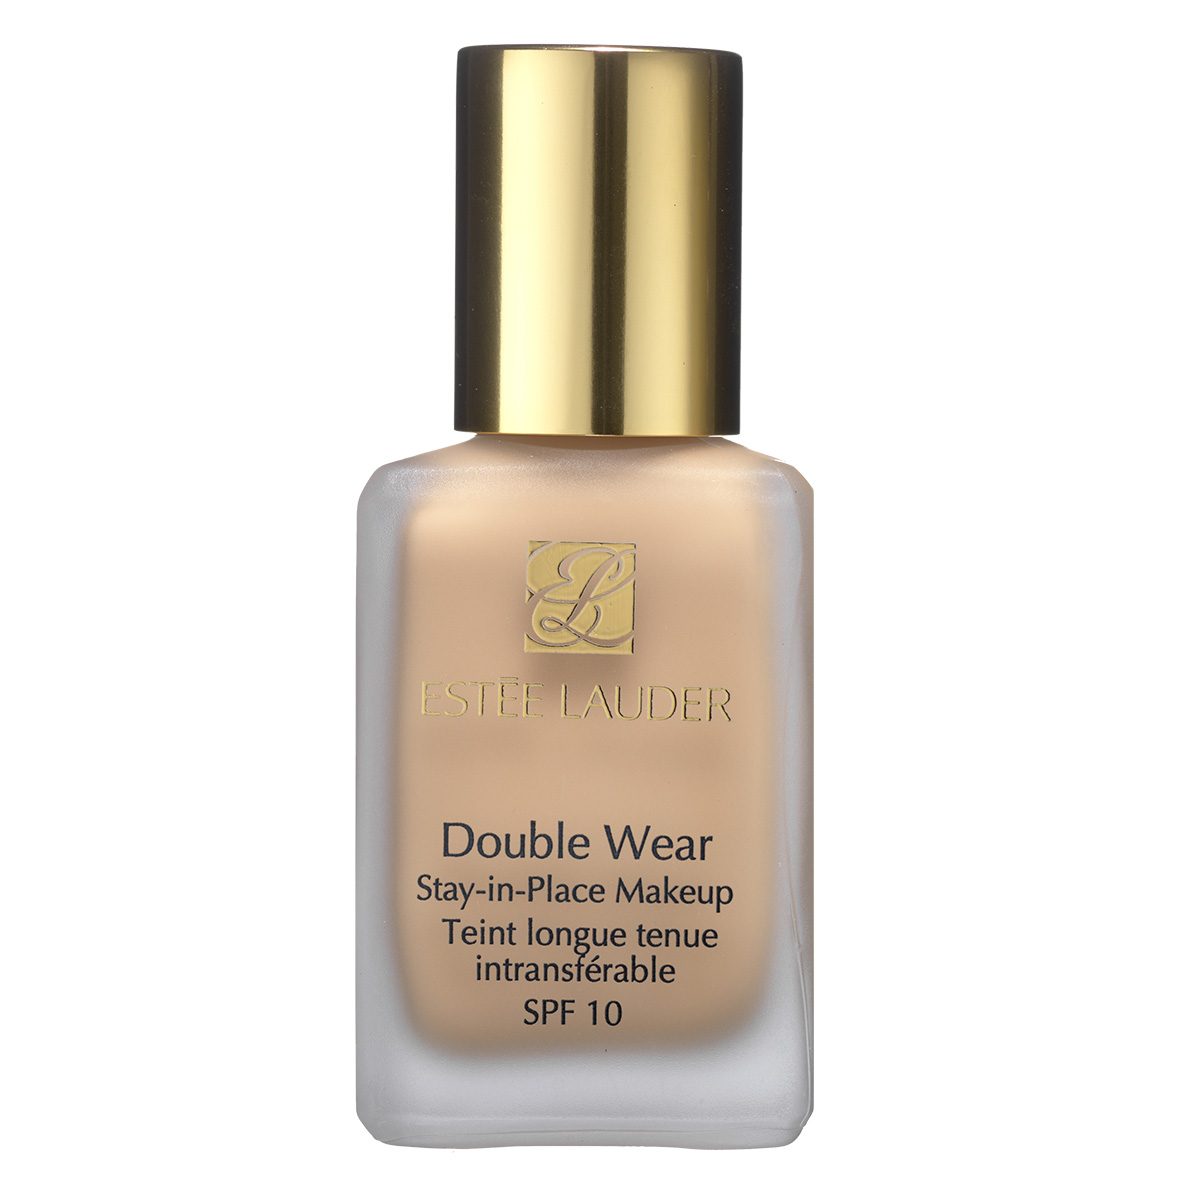 Estée Lauder Double Wear Stay-in-place makeup SPF 10 - 30 ml Pale Almond